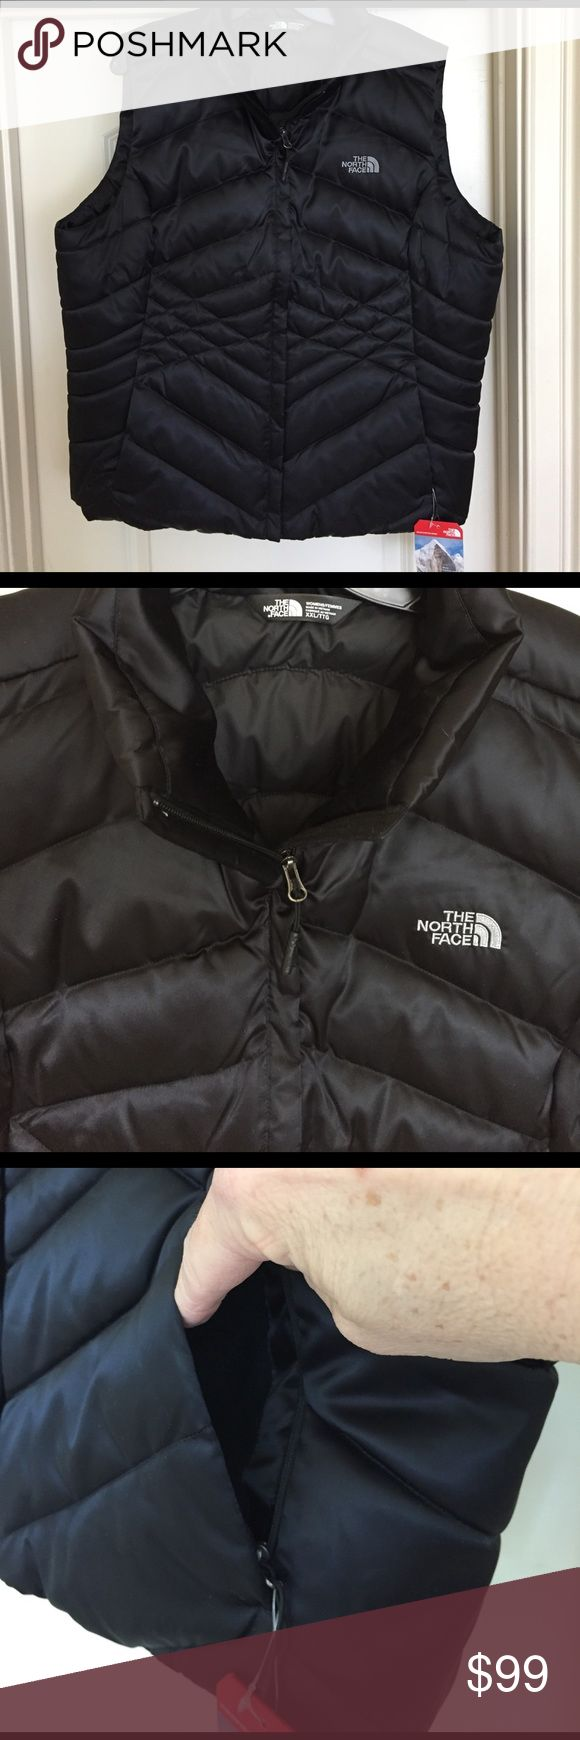 NWT NORTH FACE DOWN VEST LADIES XXL. This is an awesome NORTH FACE down vest NWT. Black with a shine not dull like some. It is so cute! Ladies XXL. I hate to part with it but it is just too big for me. North Face Jackets & Coats Vests